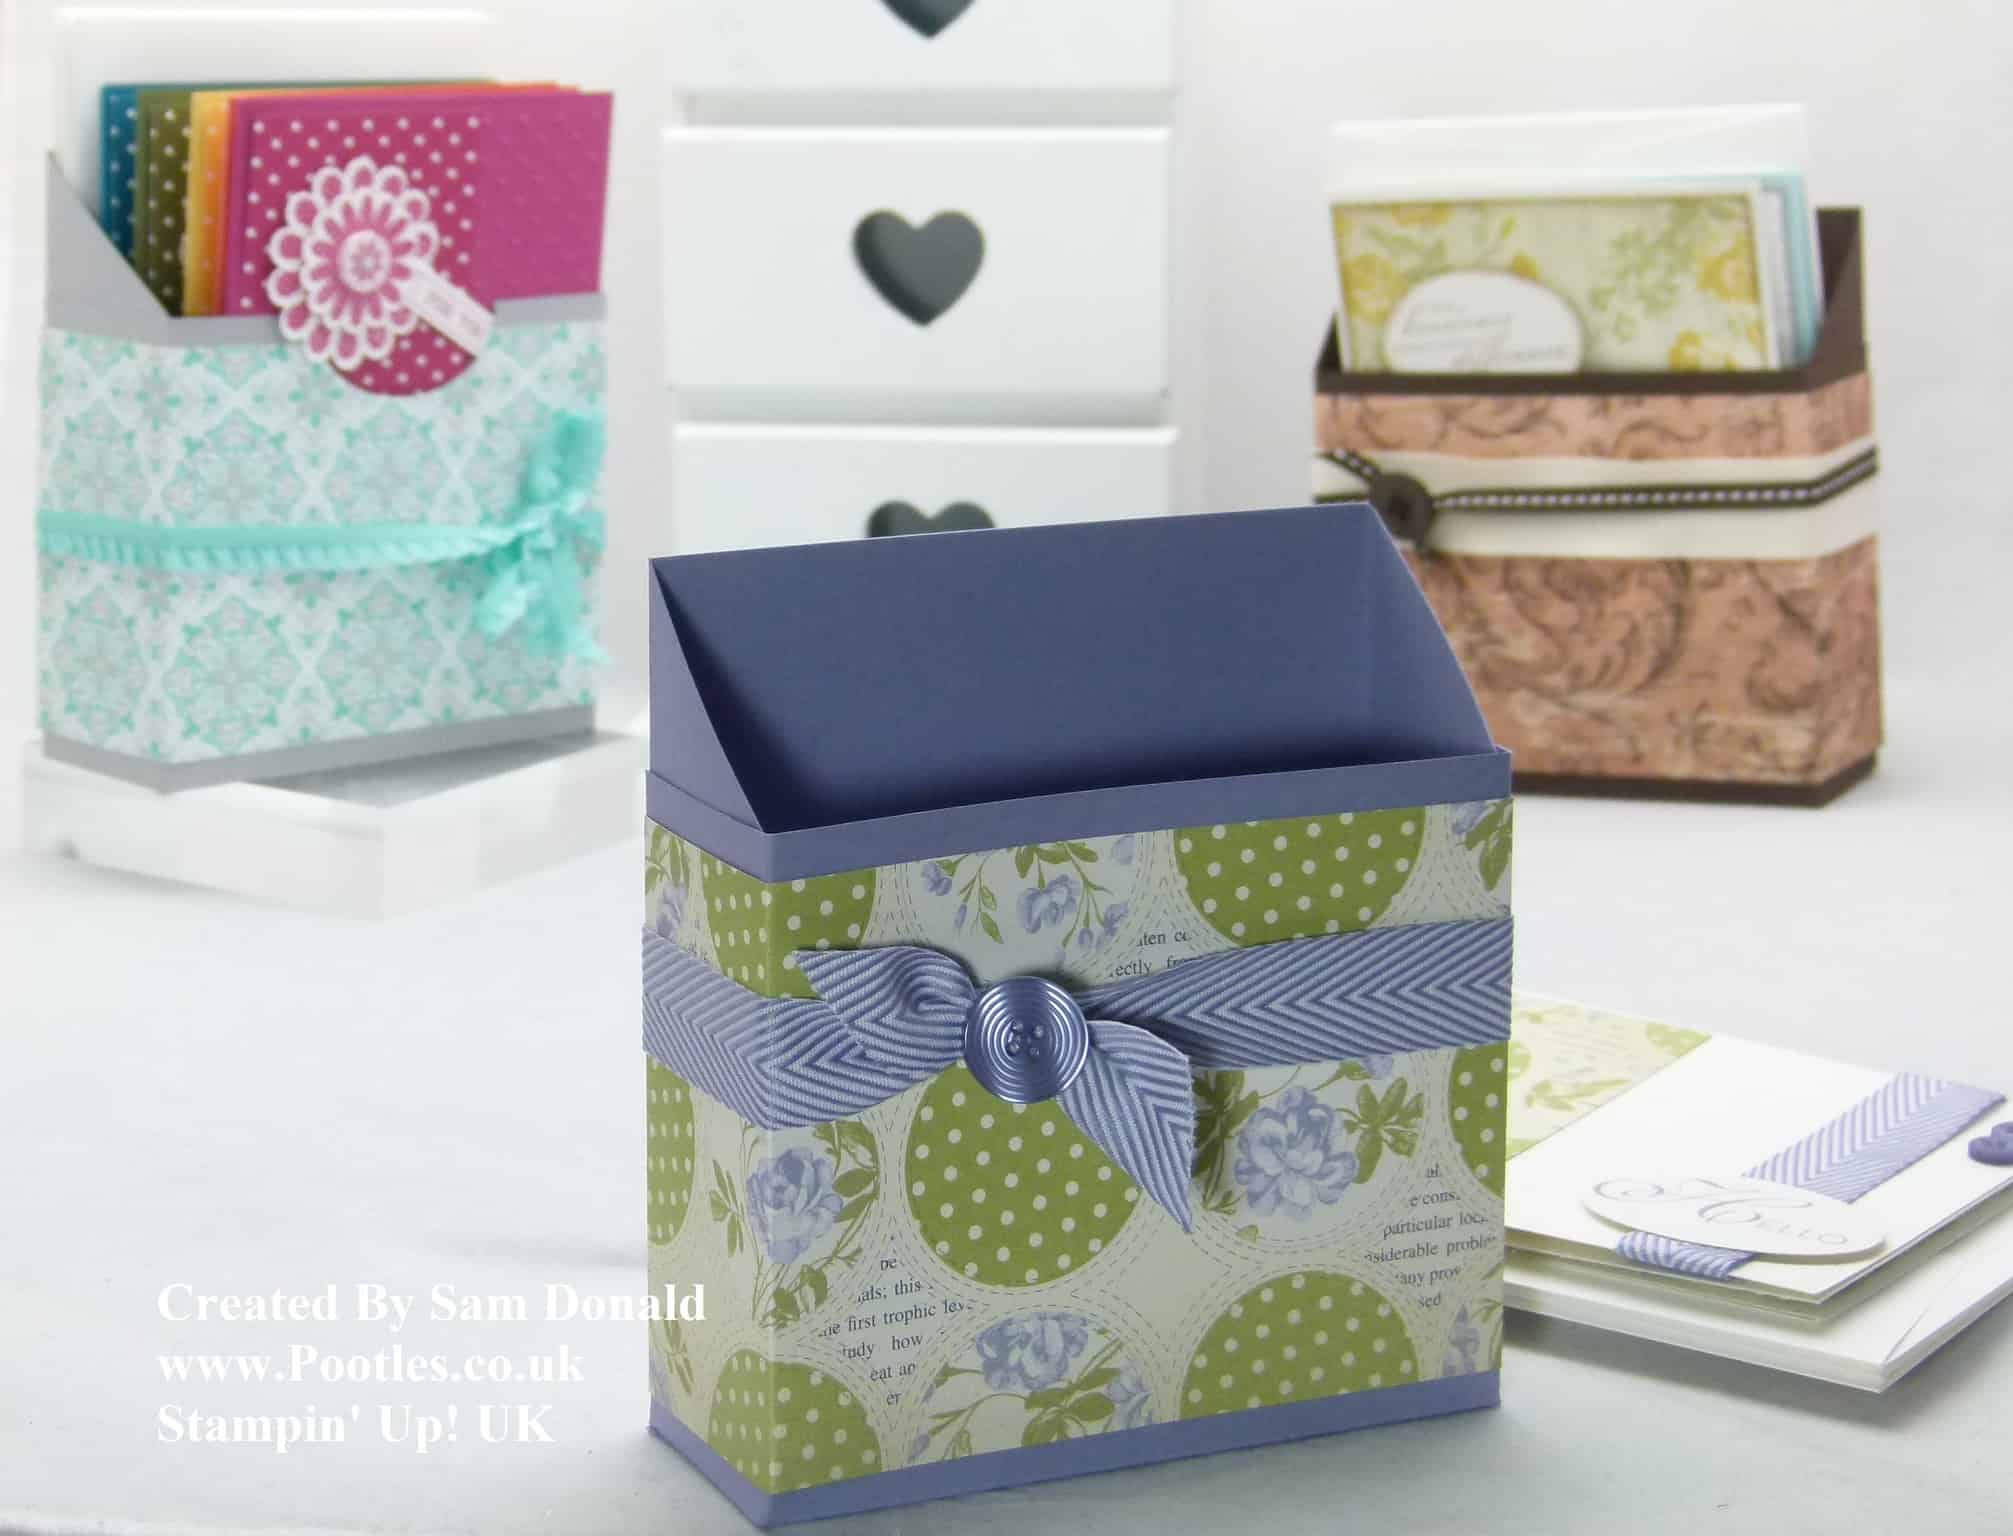 Pootles Stampin Up UK Card Holder Box Tutorial 2 (2)